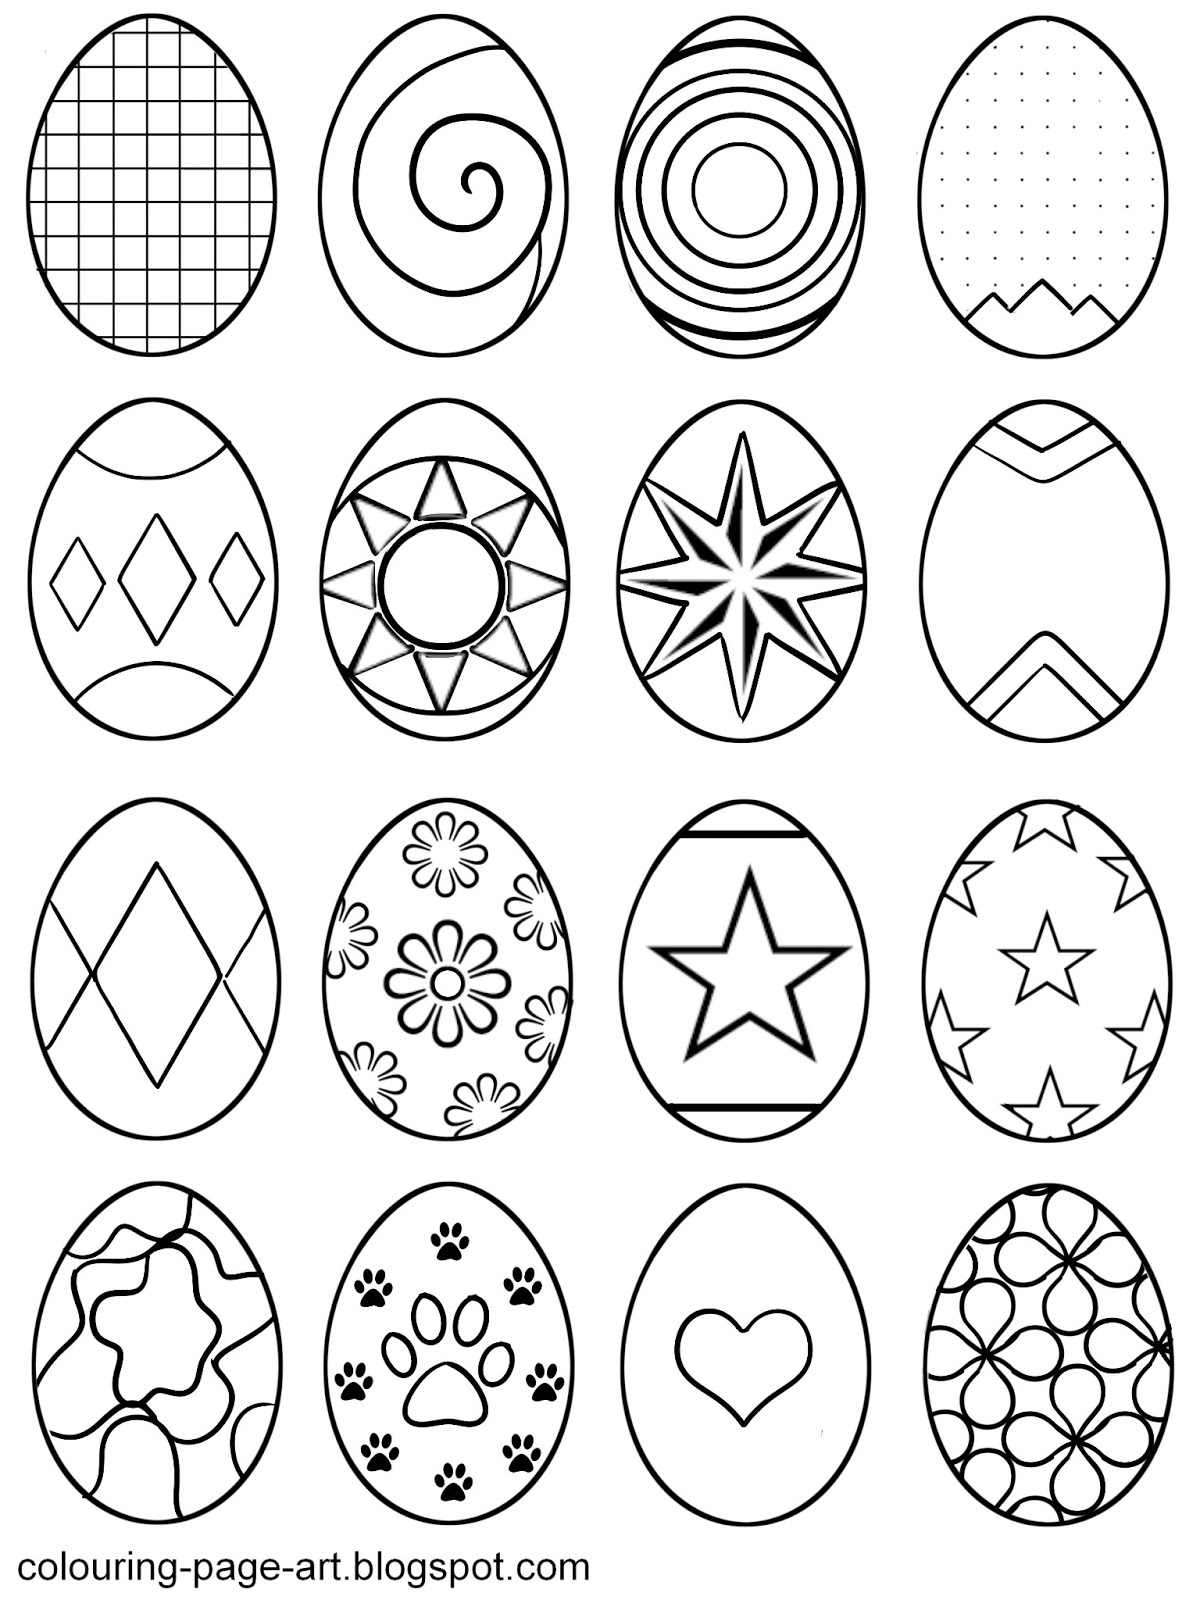 Symbol & Abstract Easter Eggs (Multiple Designs Per Sheet